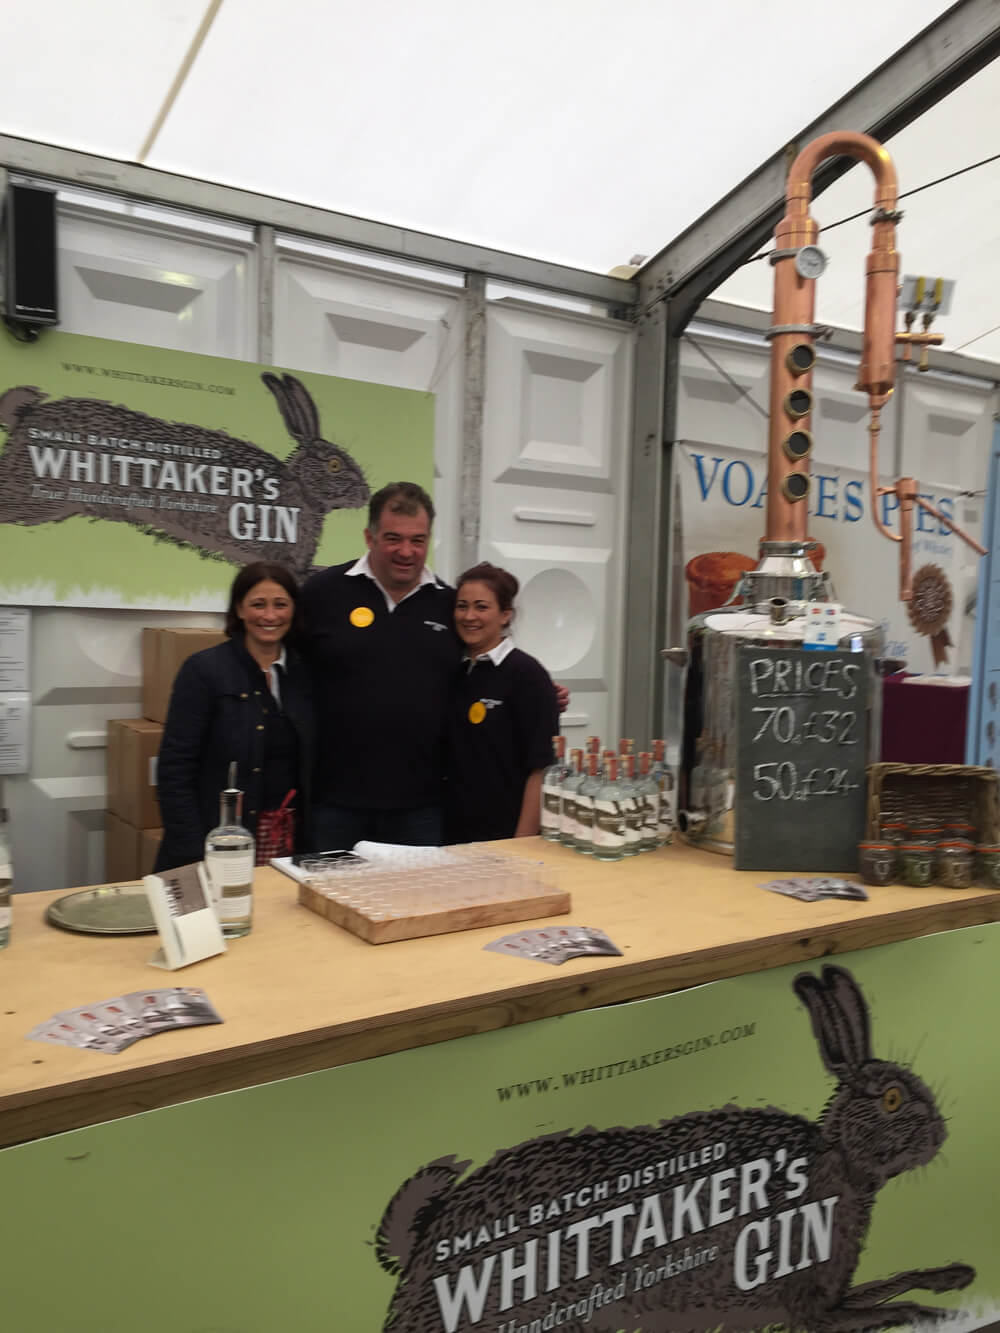 Whittakers_Gin_stall - ESCAPEMENT Magazine by Angus Davies